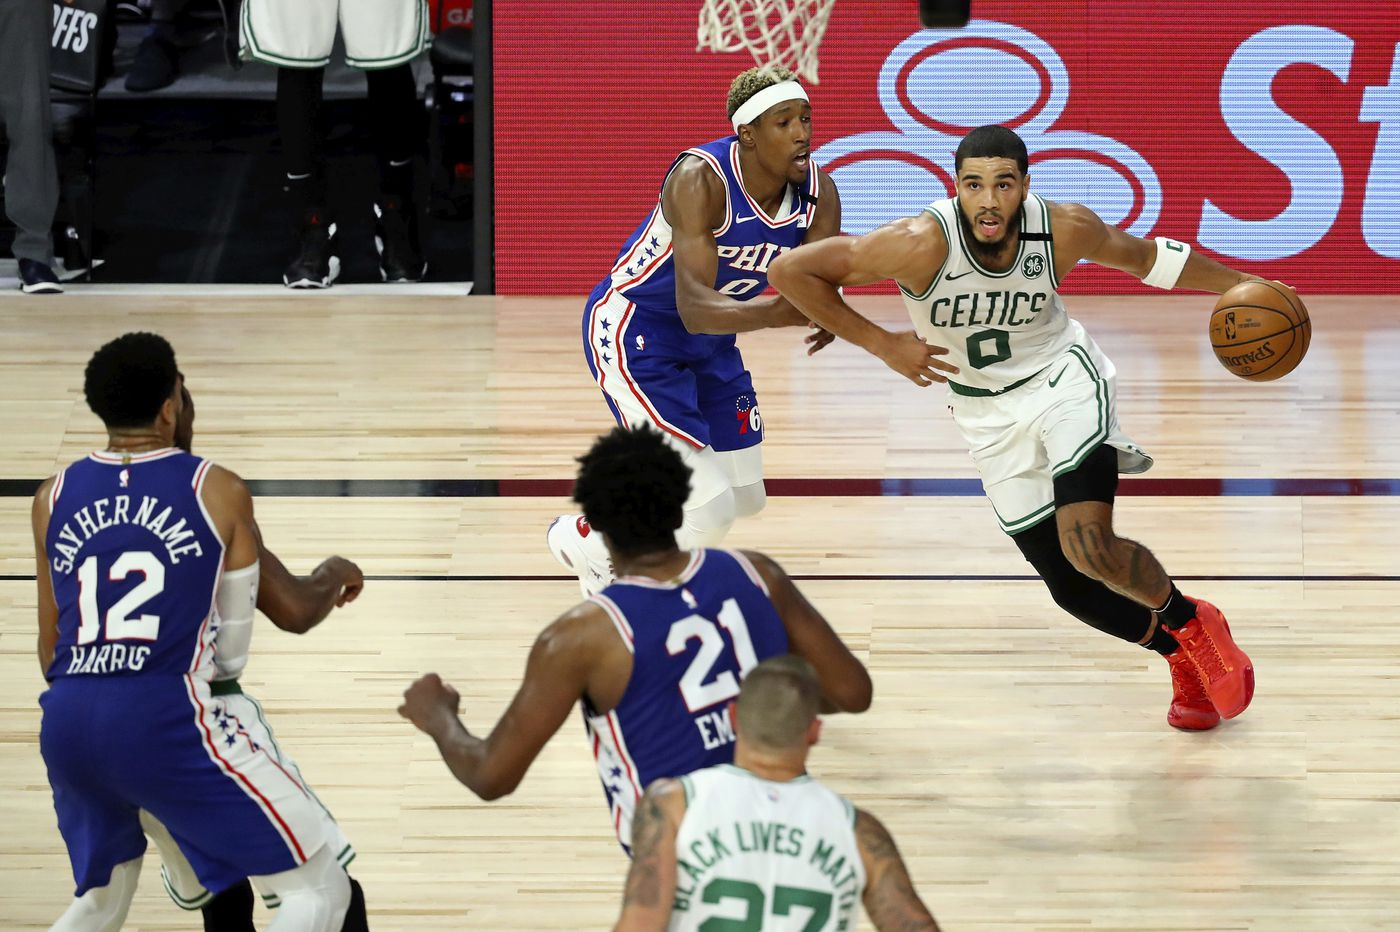 Observations from Sixers' Game 3 playoff loss to the Celtics: Richardson's D, Tatum's slow start, and a 3-0 hole